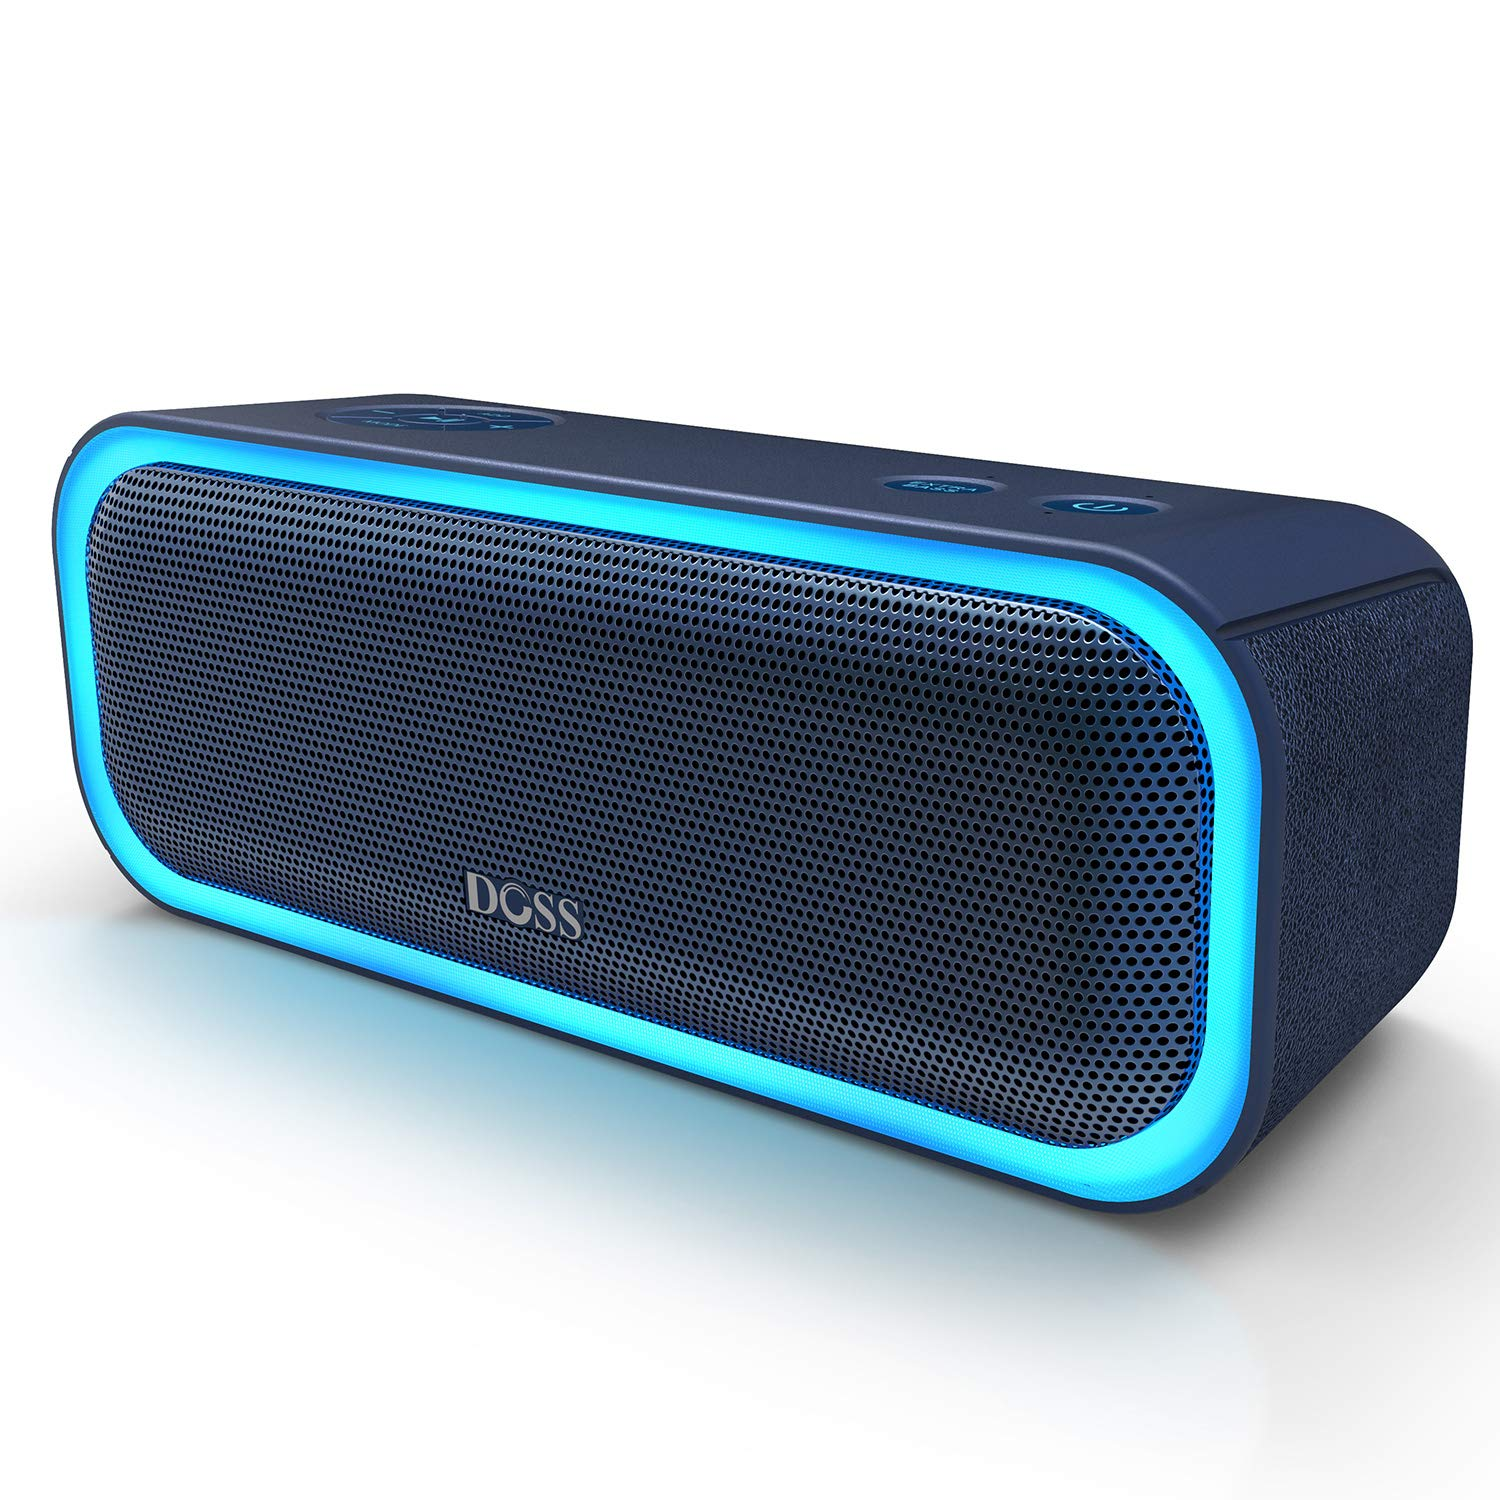 DOSS SoundBox Pro Portable Wireless Bluetooth Speaker V4.2 with 20W Stereo Sound, Active Extra Bass, Wireless Stereo Paring, Multiple Colors Lights, Waterproof IPX5, 10 Hrs Battery Life - Blue DOSSDirect